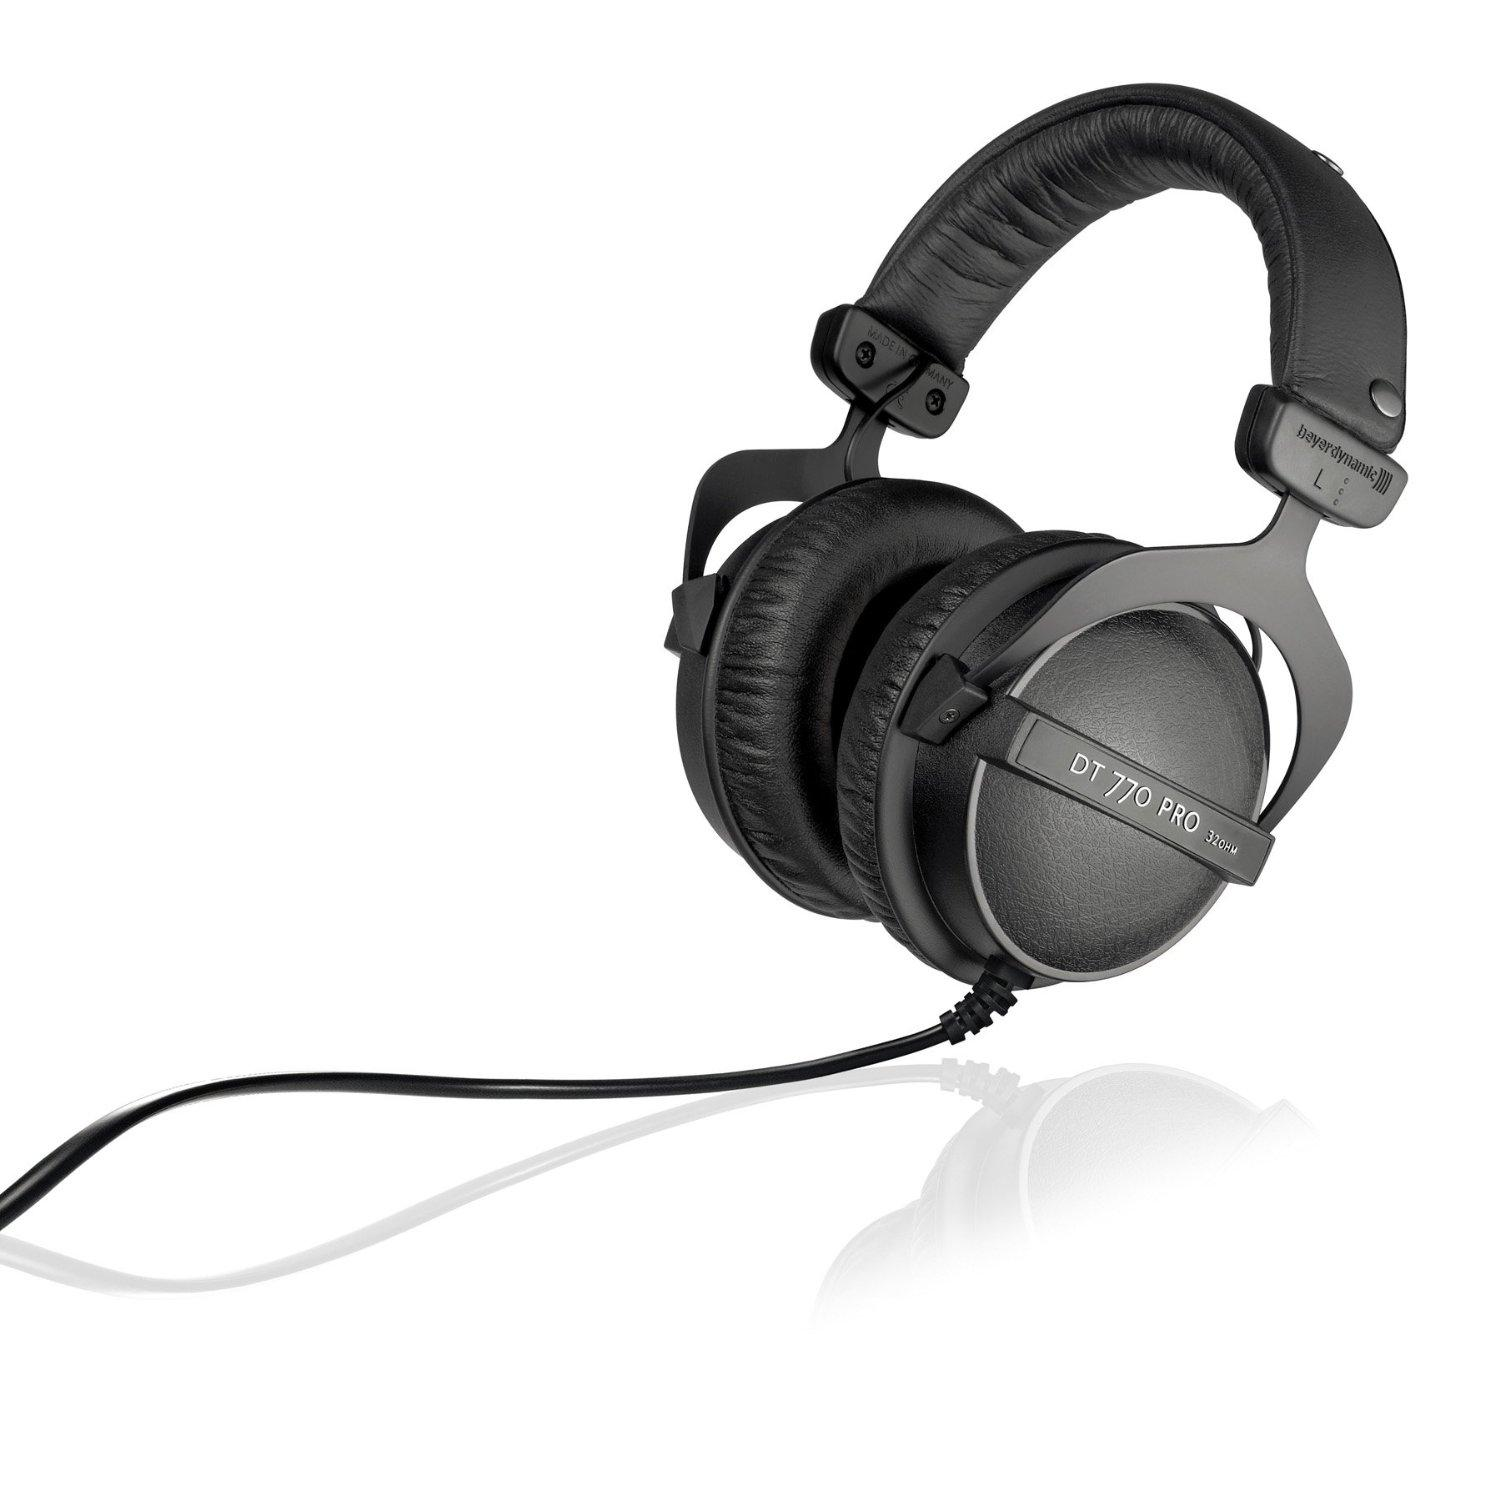 Beyerdynamic DT 770 Pro 32 Ohm Closed Studio Reference Headphone